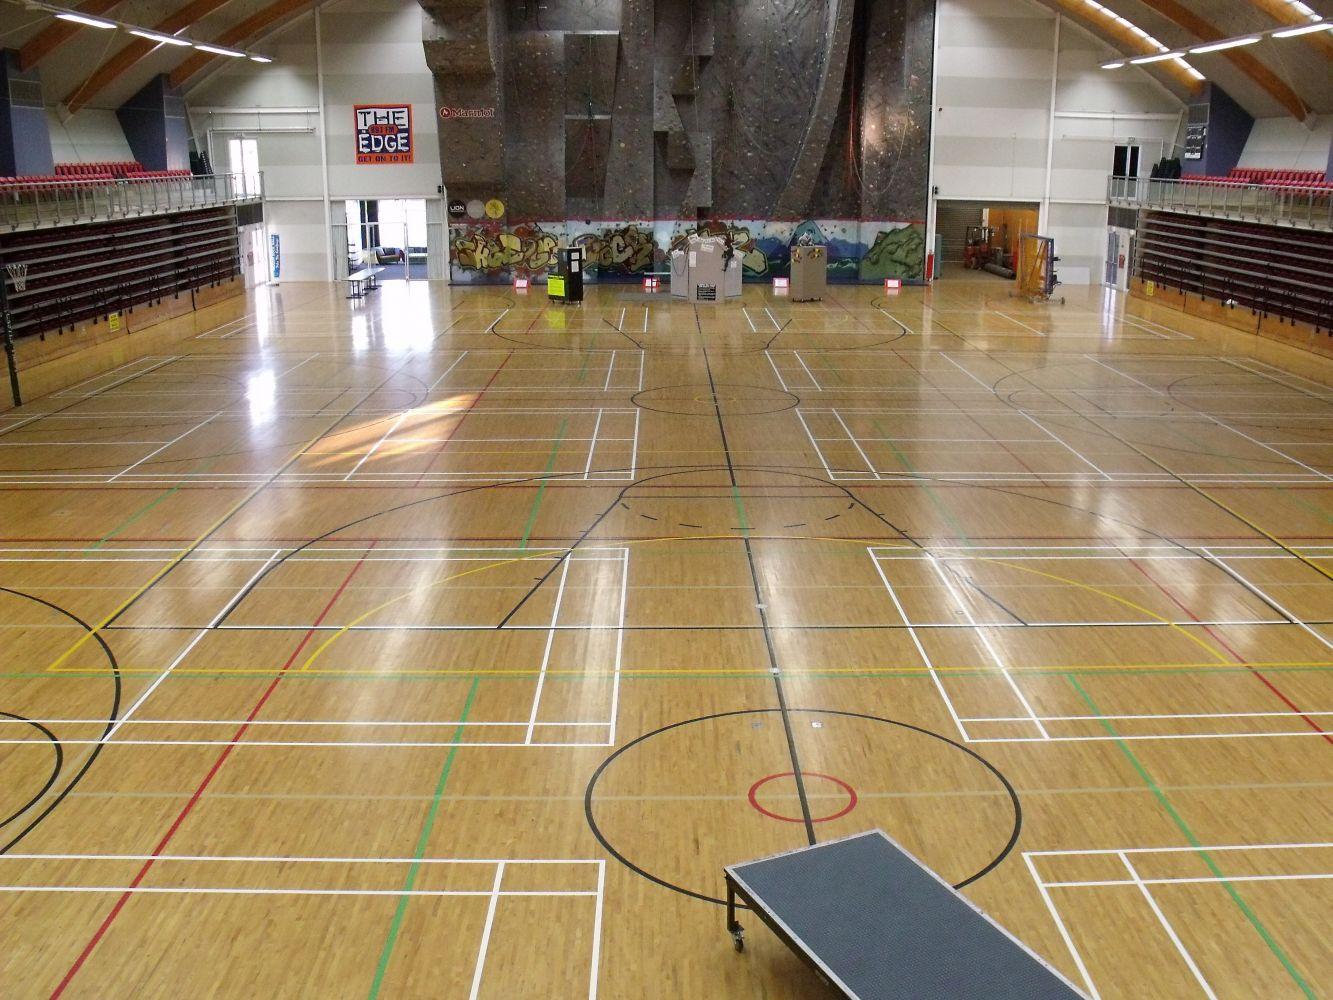 Large hall with line marking